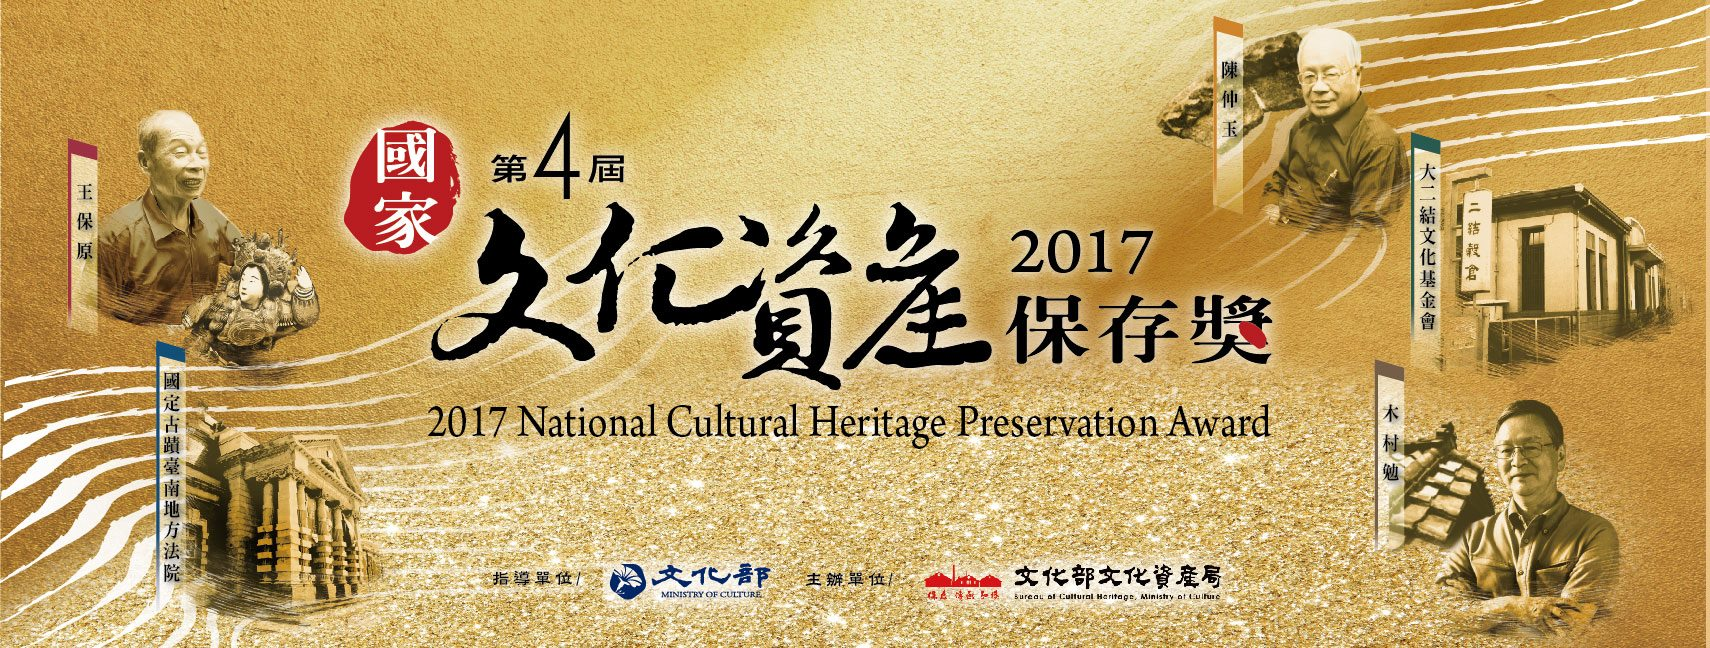 National Cultural Heritage Preservation Awards